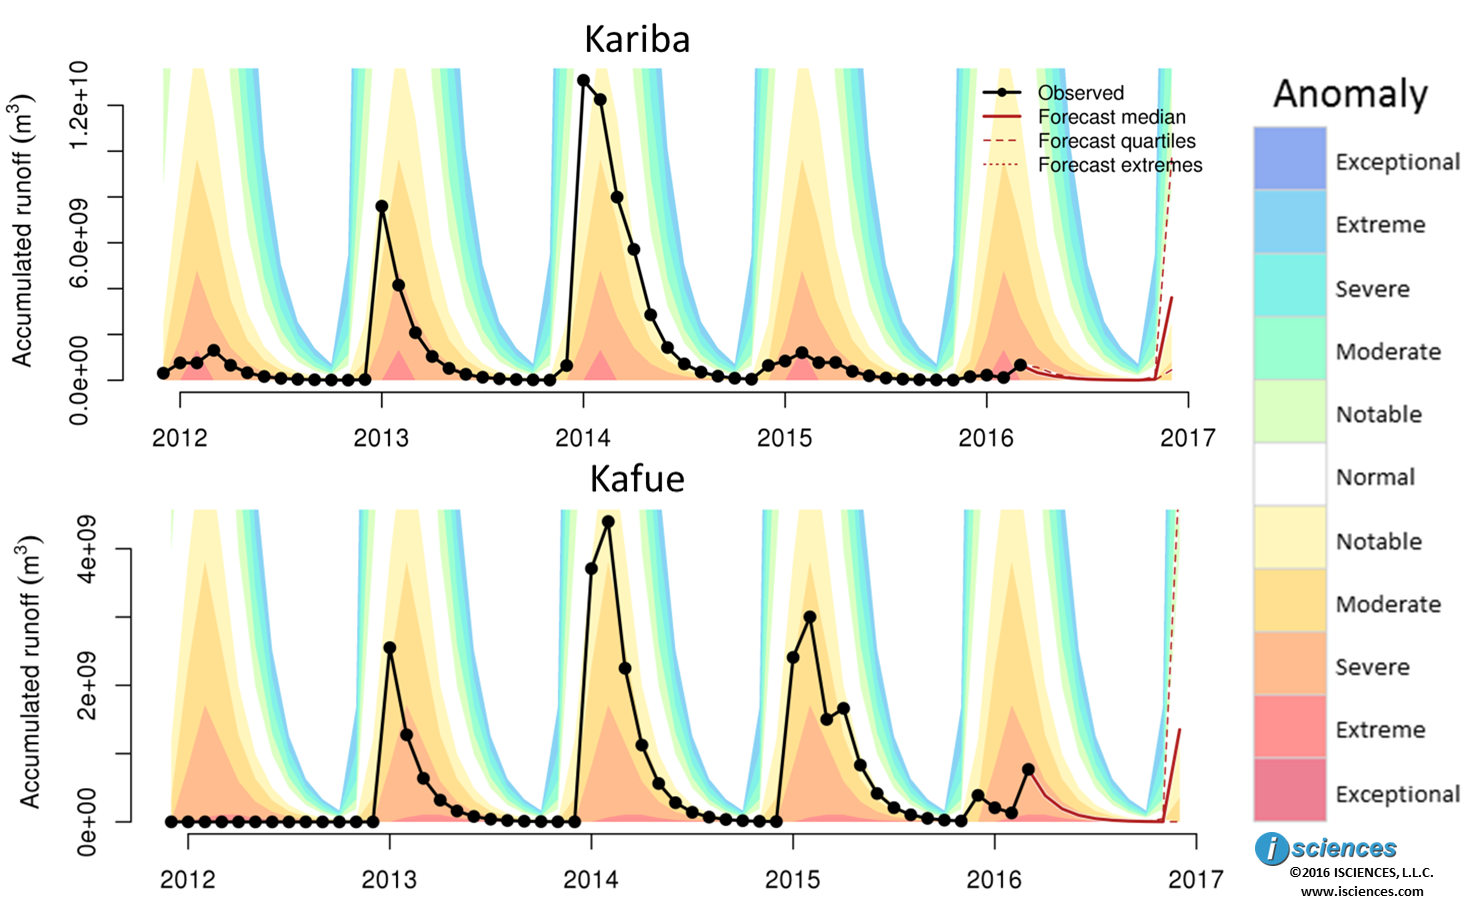 Figure         SEQ Figure \* ARABIC     3      . Total blue water (flow accumulated runoff) at Kariba Dam and Kafue Gorge Dam in Zambia.  Background colors indicate anomaly of indicated water levels (see key).